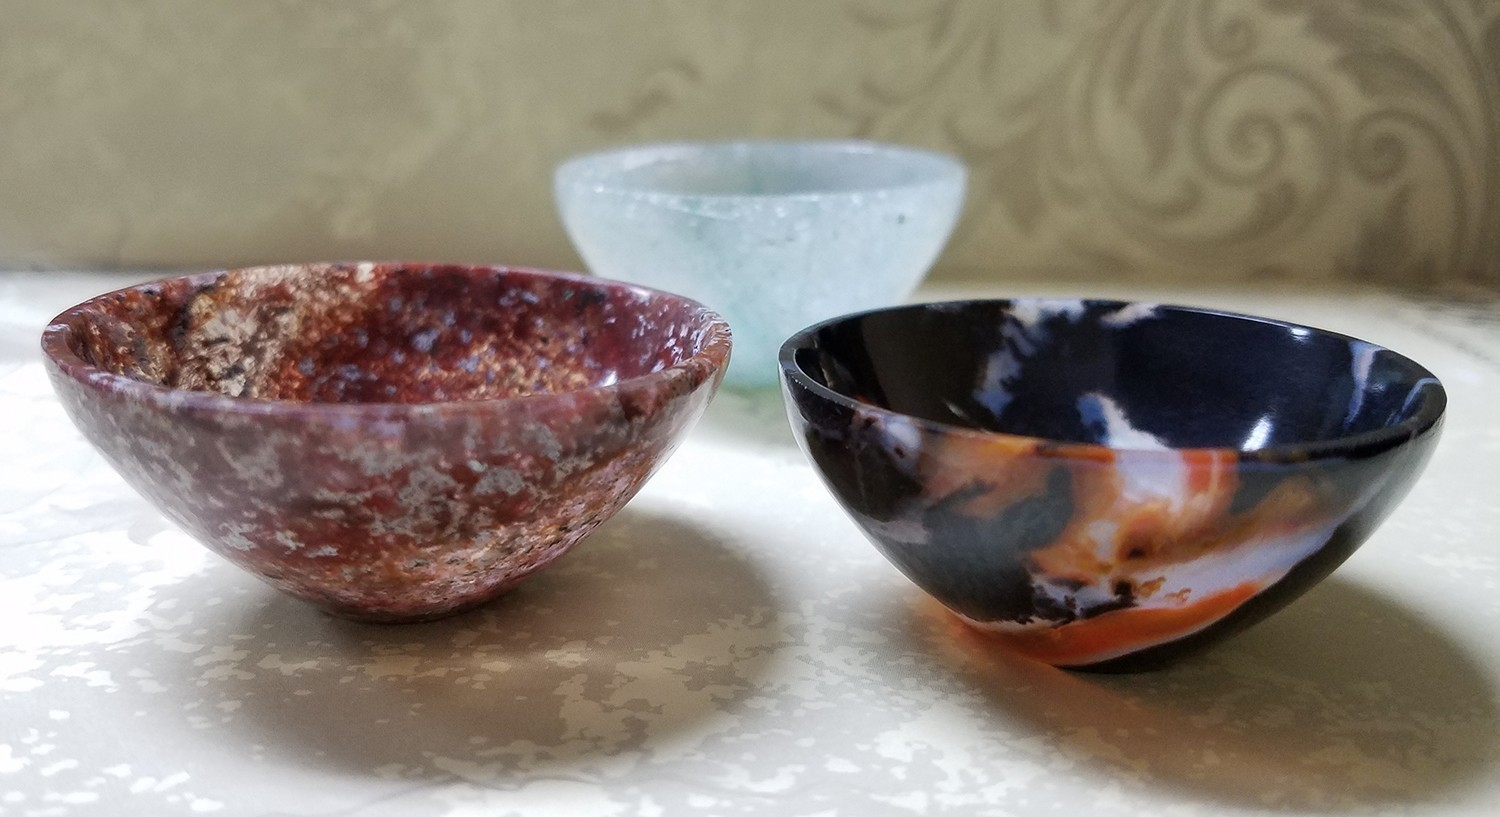 Gem Spryte Hand-Made Charging Bowl - Customized For You